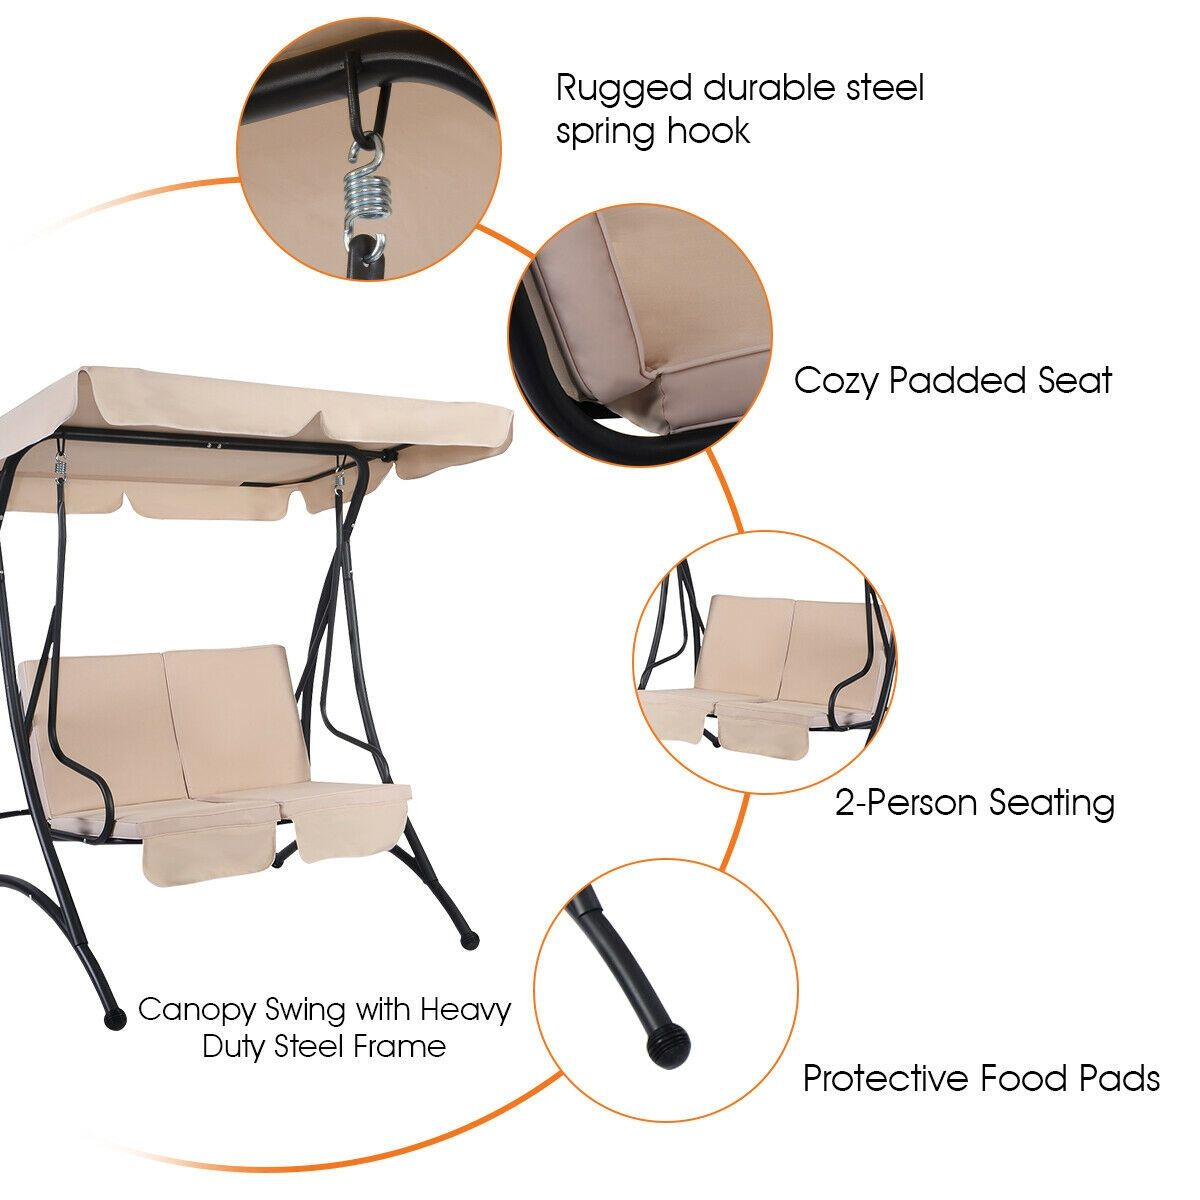 2 person cushioned furniture steel canopy swing chair